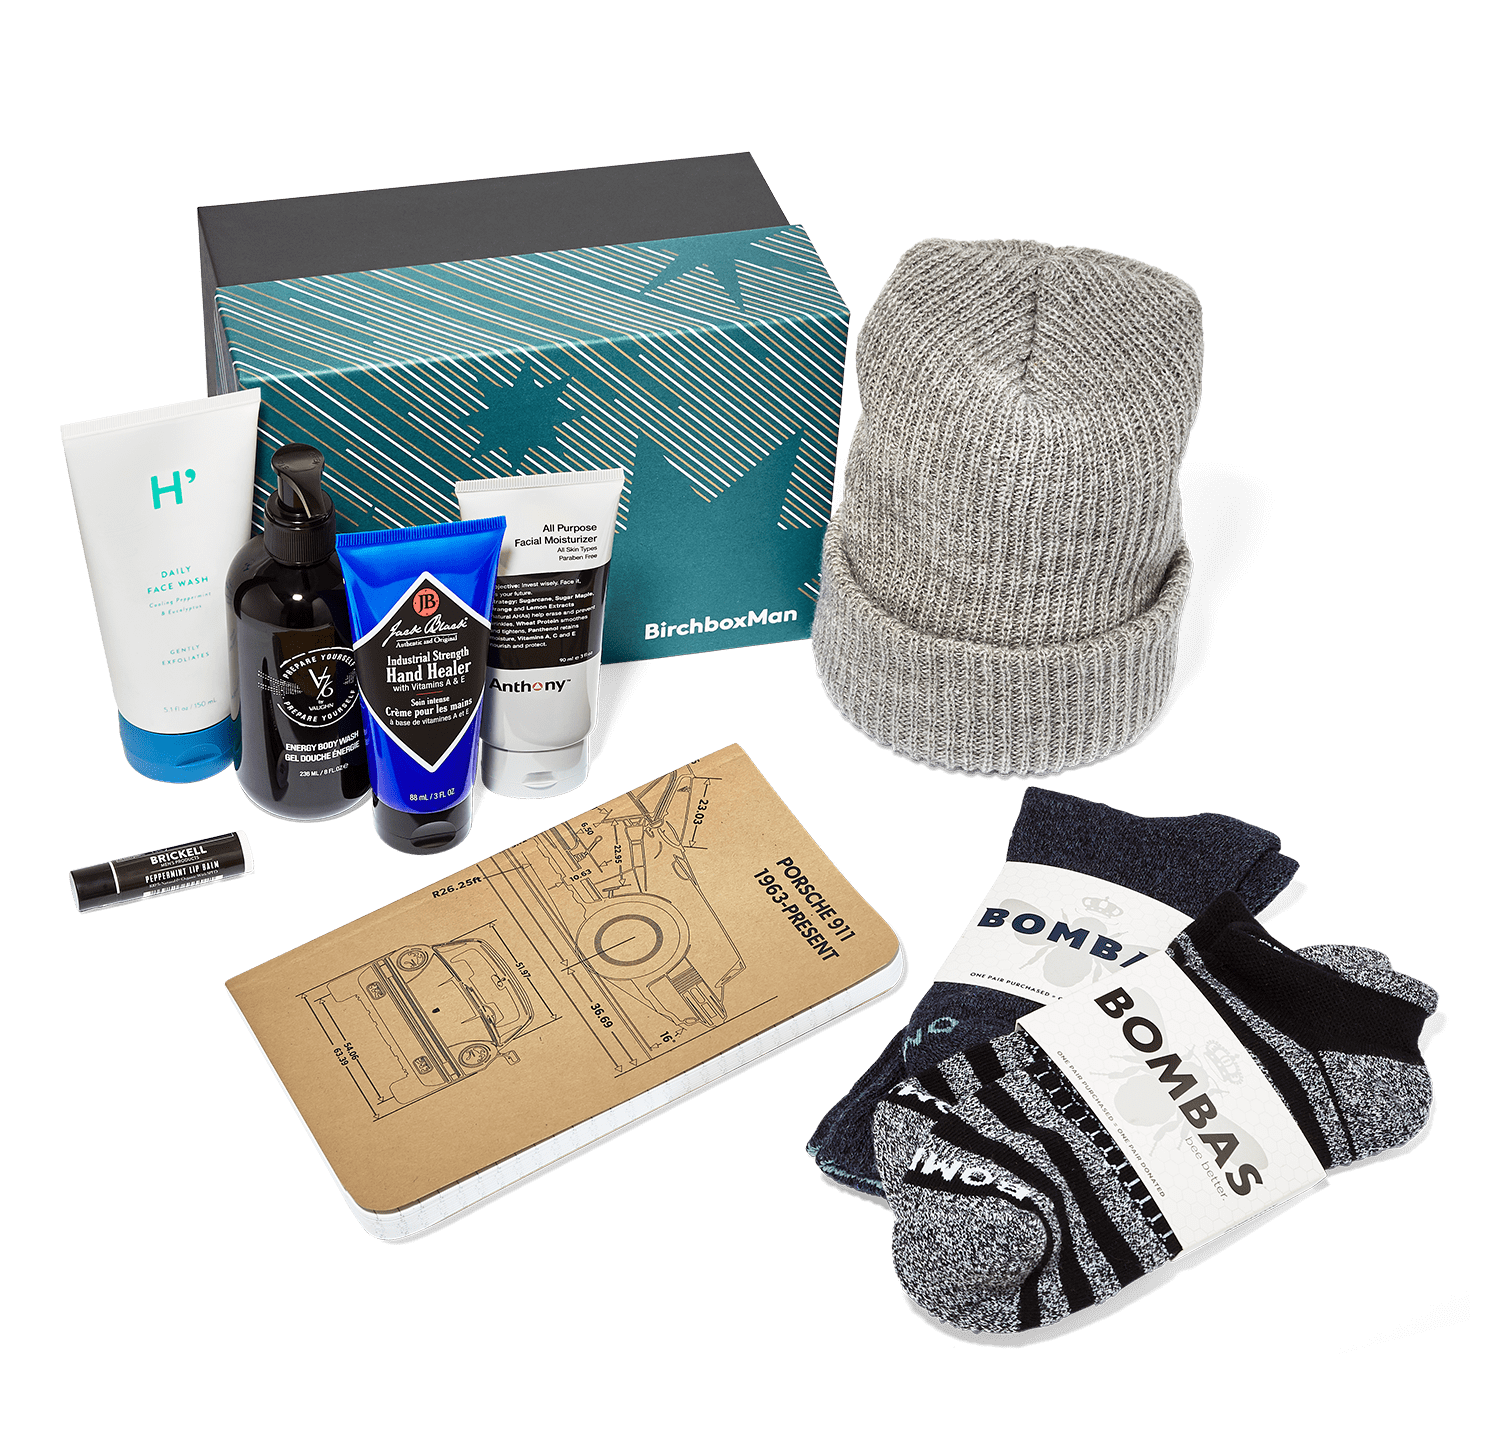 New Birchbox Man Limited Edition Box: Handsome and Bright Box + Coupons!